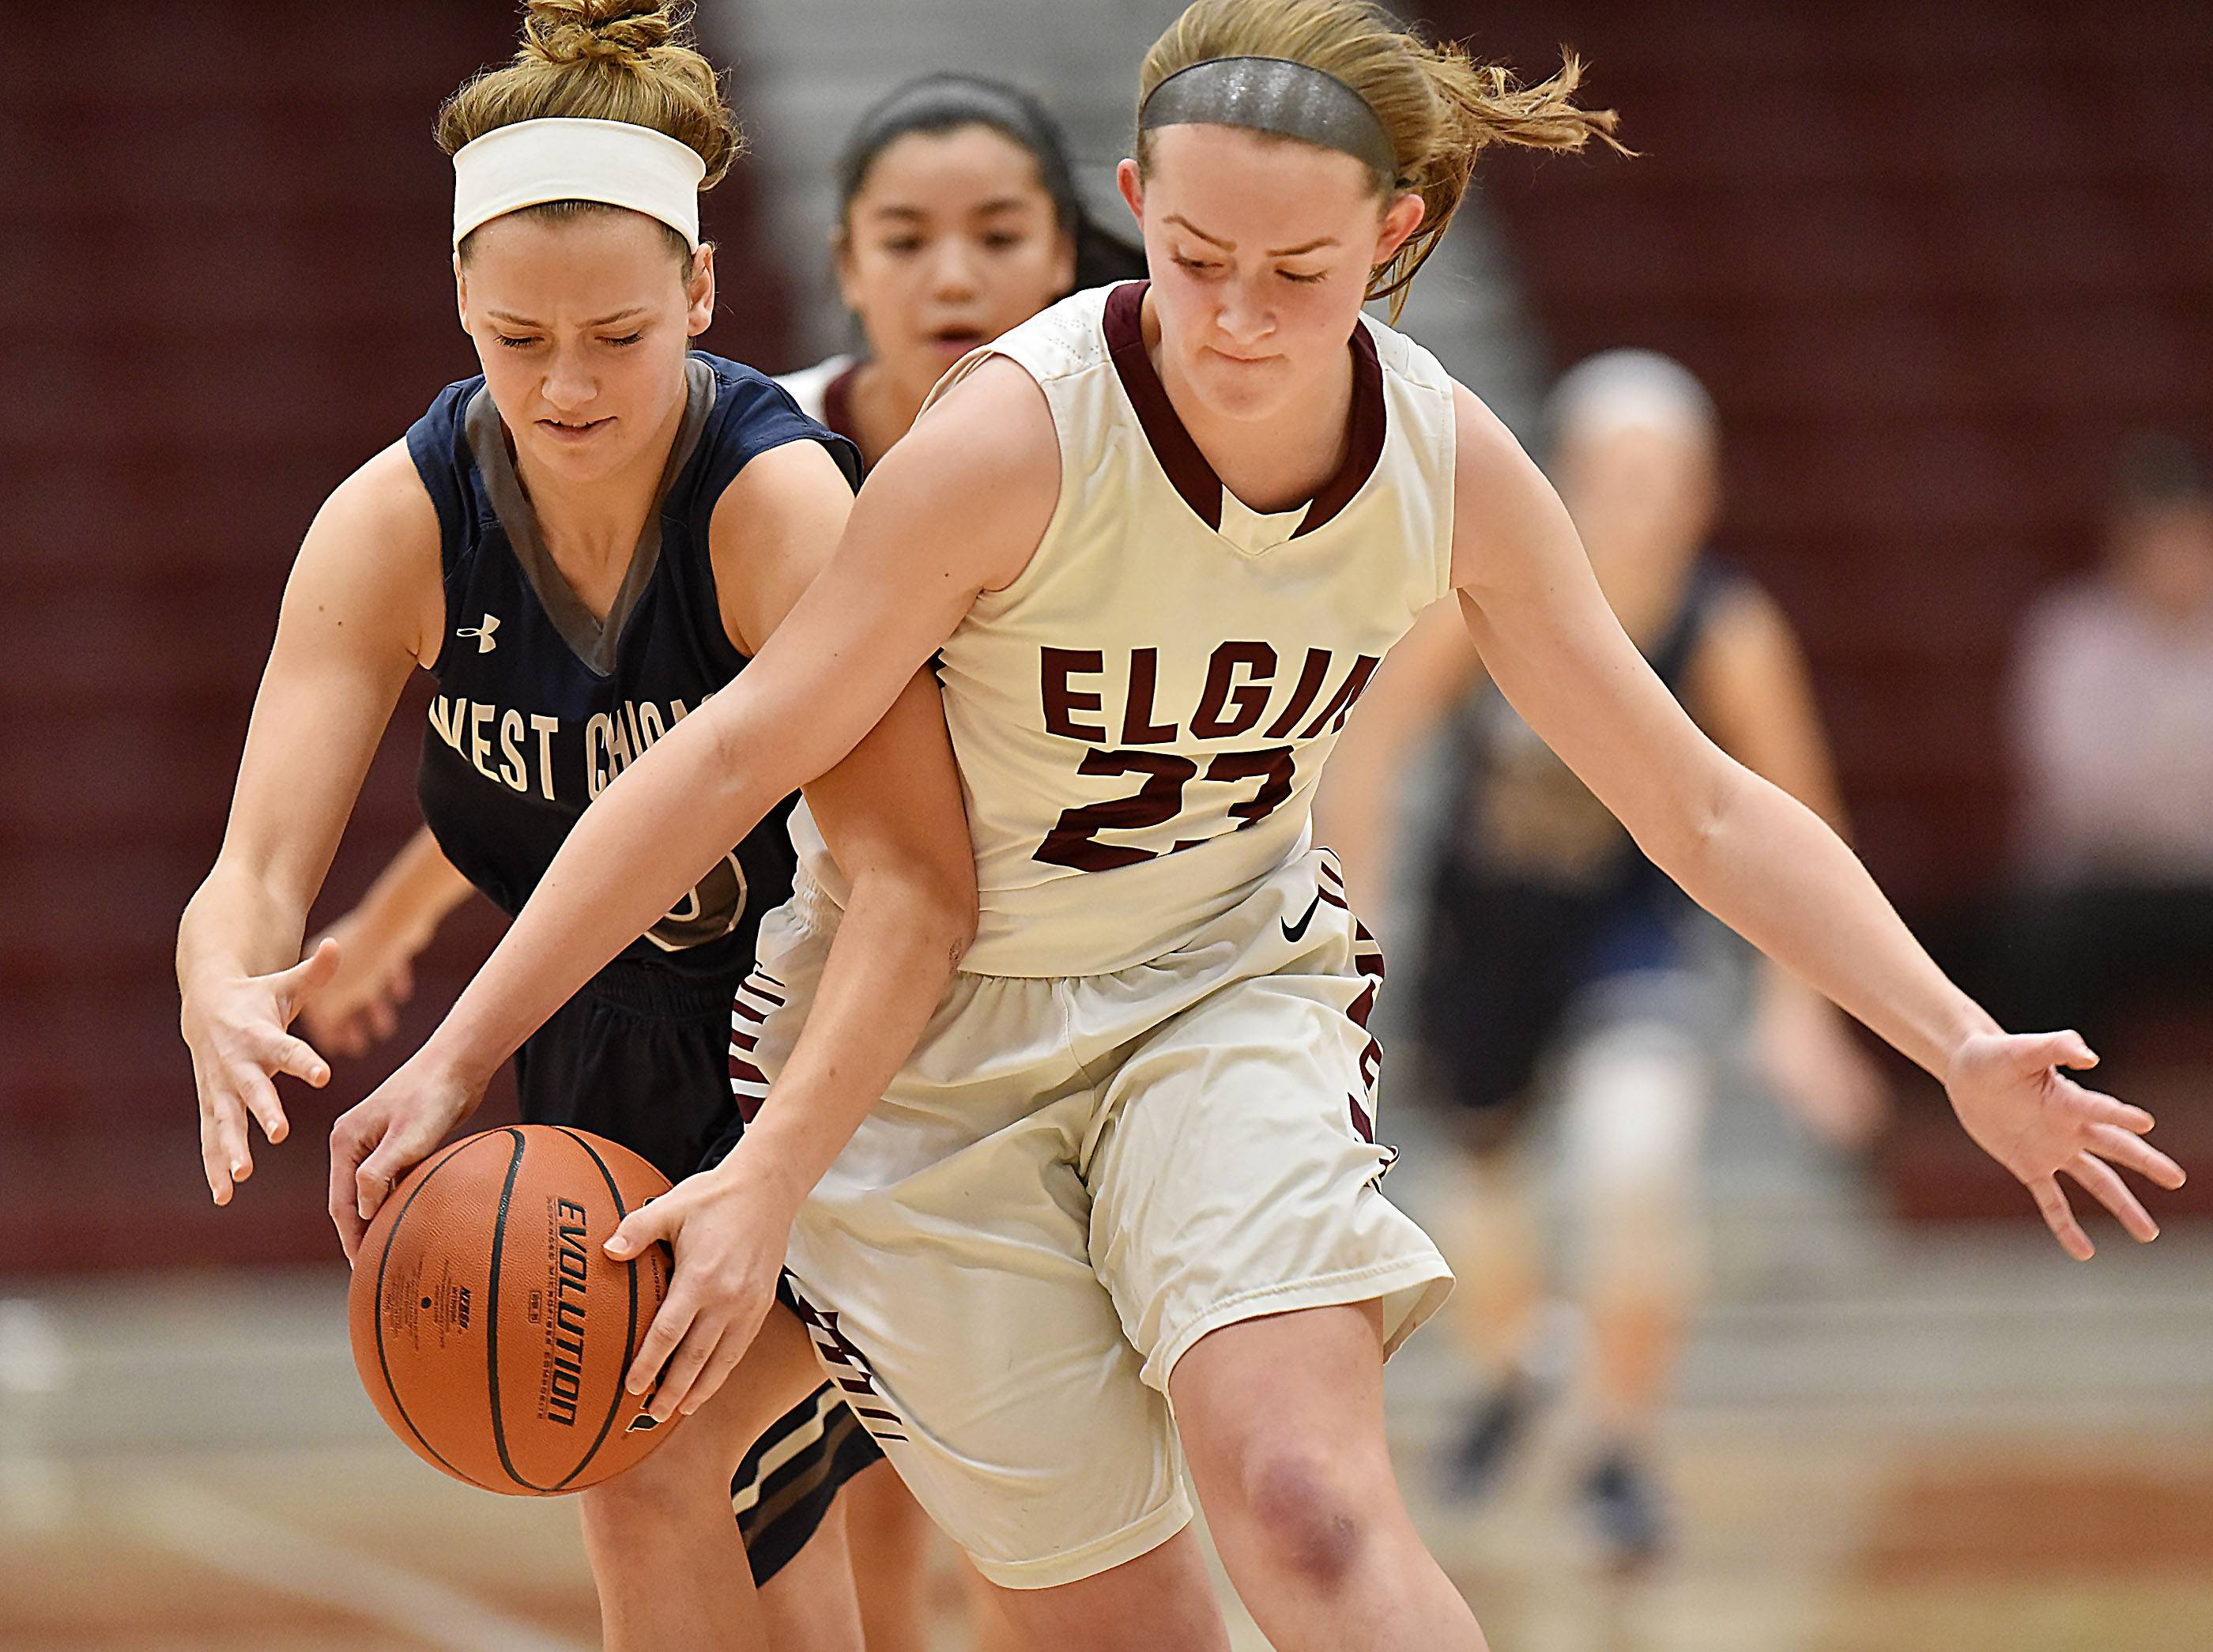 Elgin's Kylie Graves, right, is the 2017-18 Daily Herald Fox Valley Female Athlete of the Year.